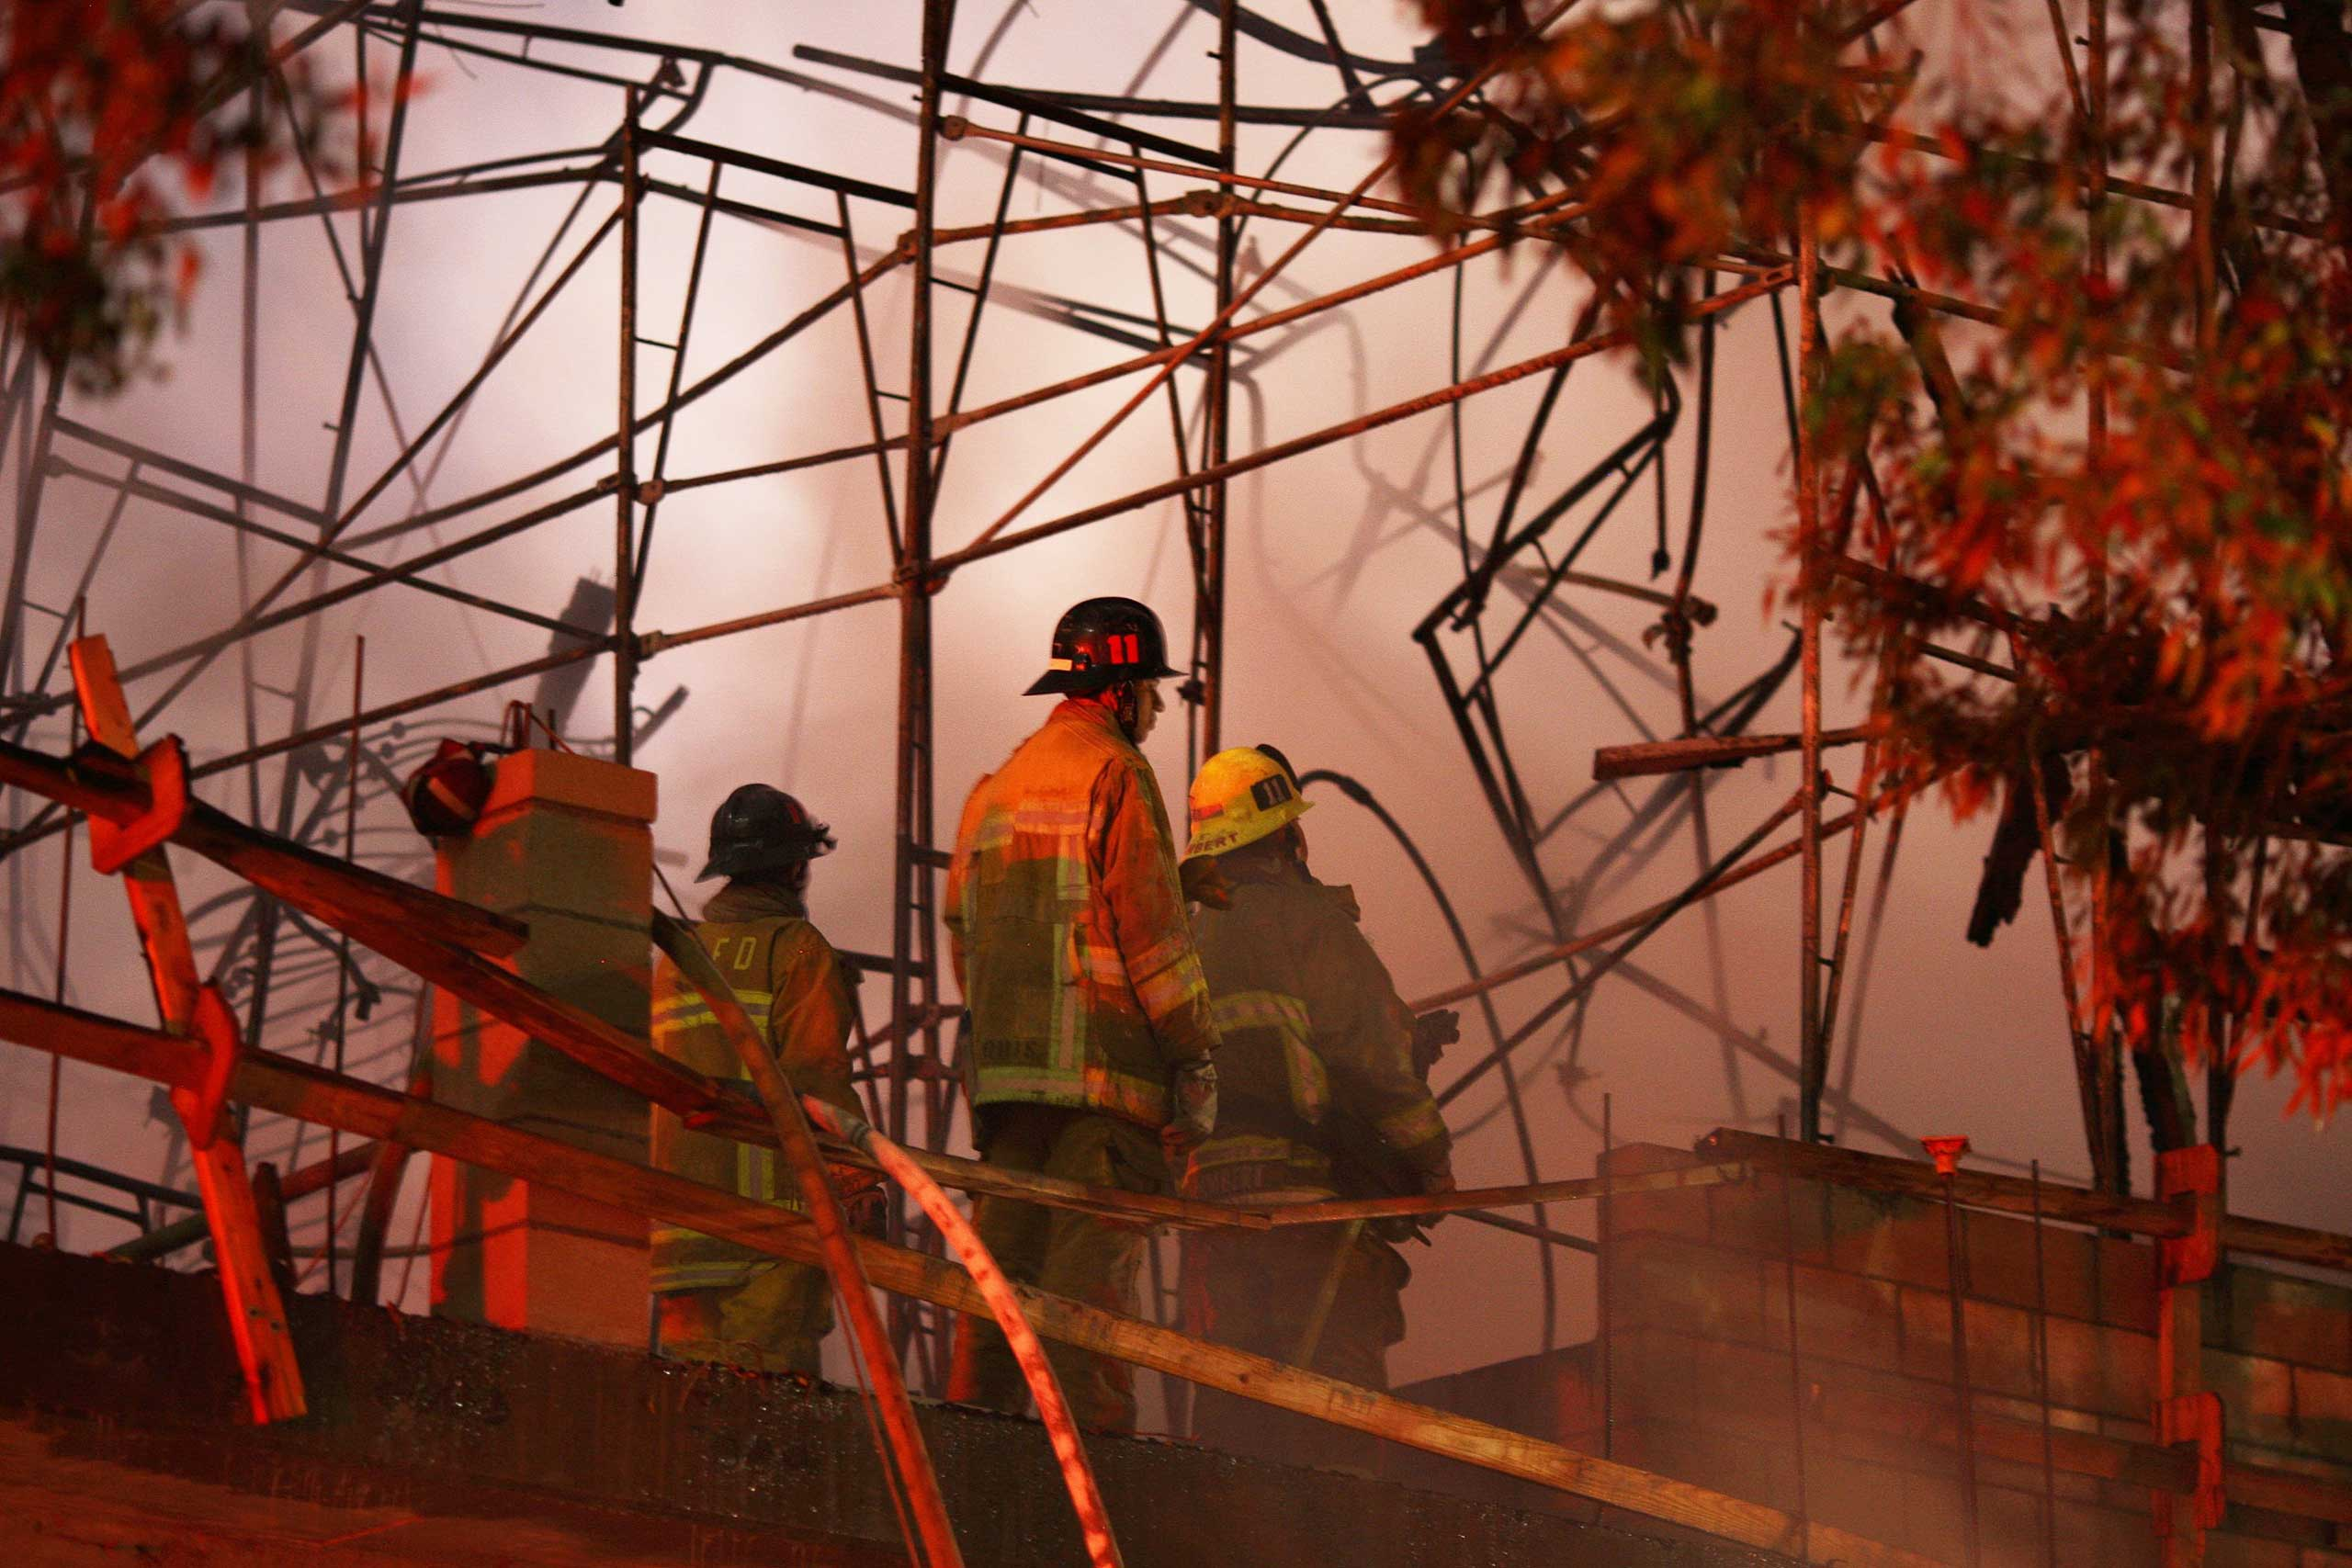 Los Angeles County firefighters battle a blaze at an apartment building under construction next to the Harbor CA-110 Freeway in Los Angeles on Dec. 8, 2014.